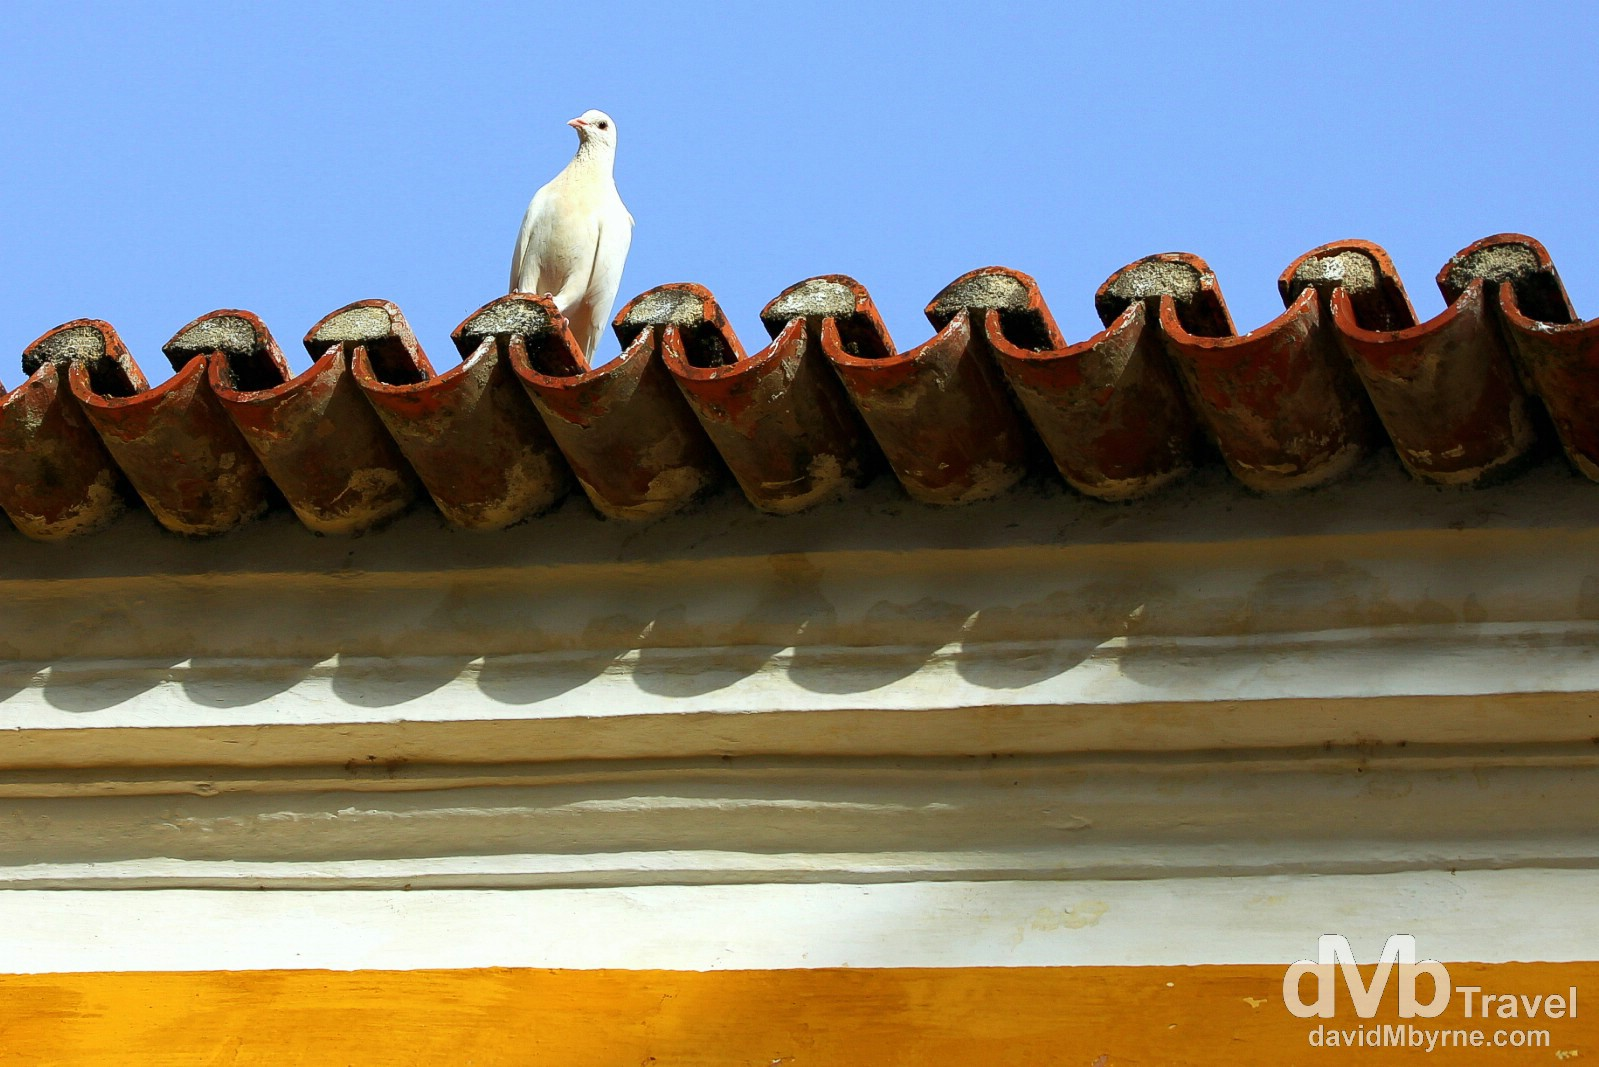 A dove perched on the roof of the ornate chapel of Quinta de Sant'Ana estate. Off the main courtyard of the Quinta, the church, dating to 1633, is the oldest part of the estate. The dozen or so doves who call the courtyard home really push the idyllic-o-meter into overdrive. Gradil, Mafra, Portugal. August 21st 2013.